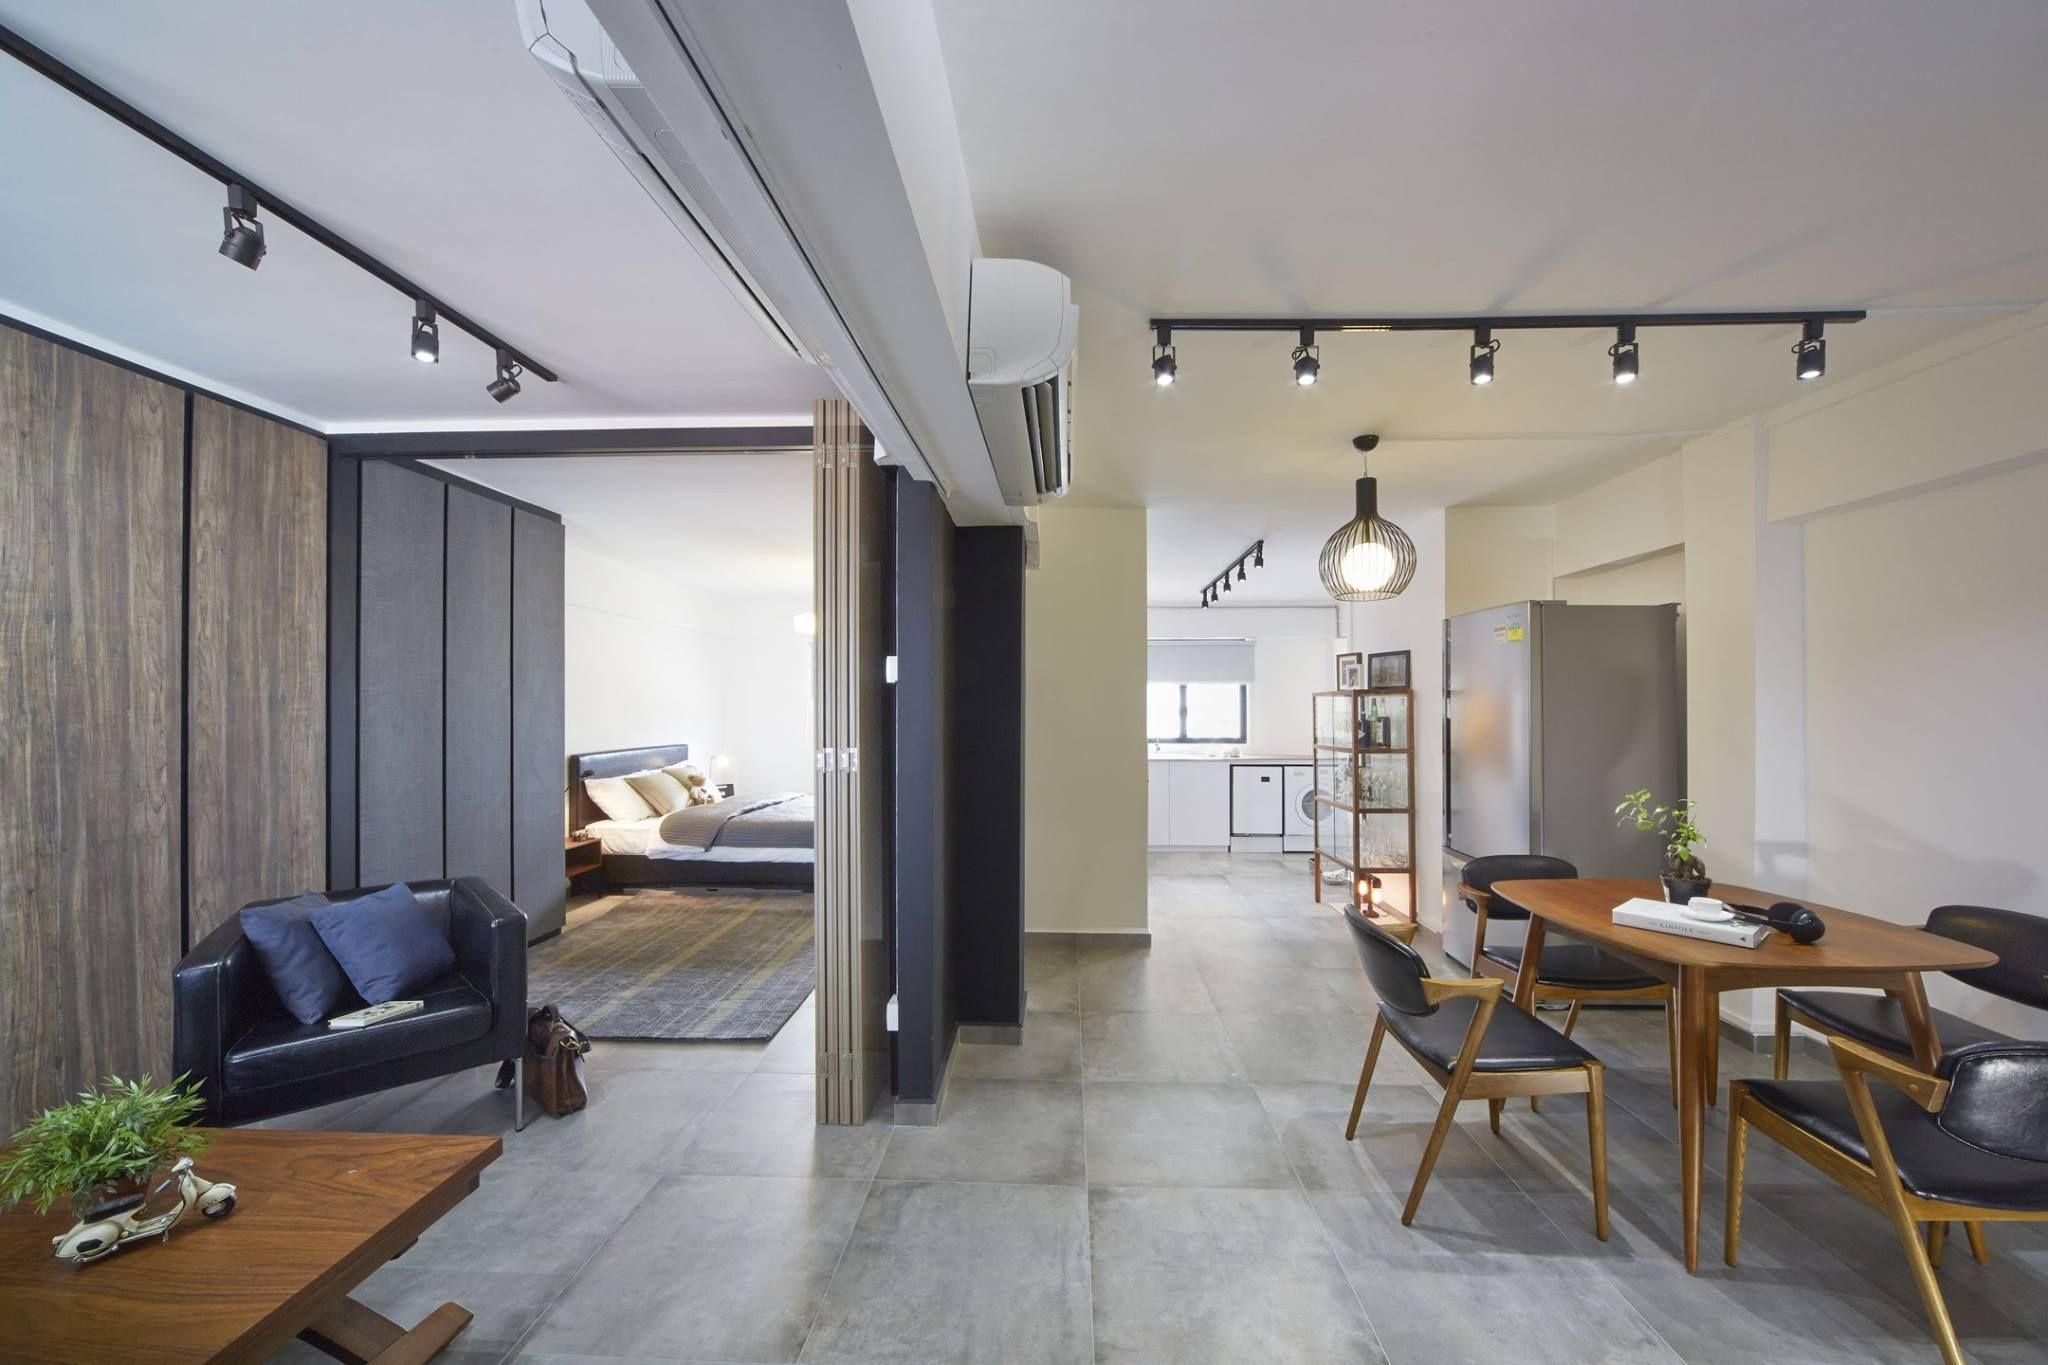 Industrial With Sliding Doors Https M Facebook Com Story Php Story Fbid 708718132559642 Id 573359189428871 Refid 17 Ref Interior Design Plan Home Home Decor